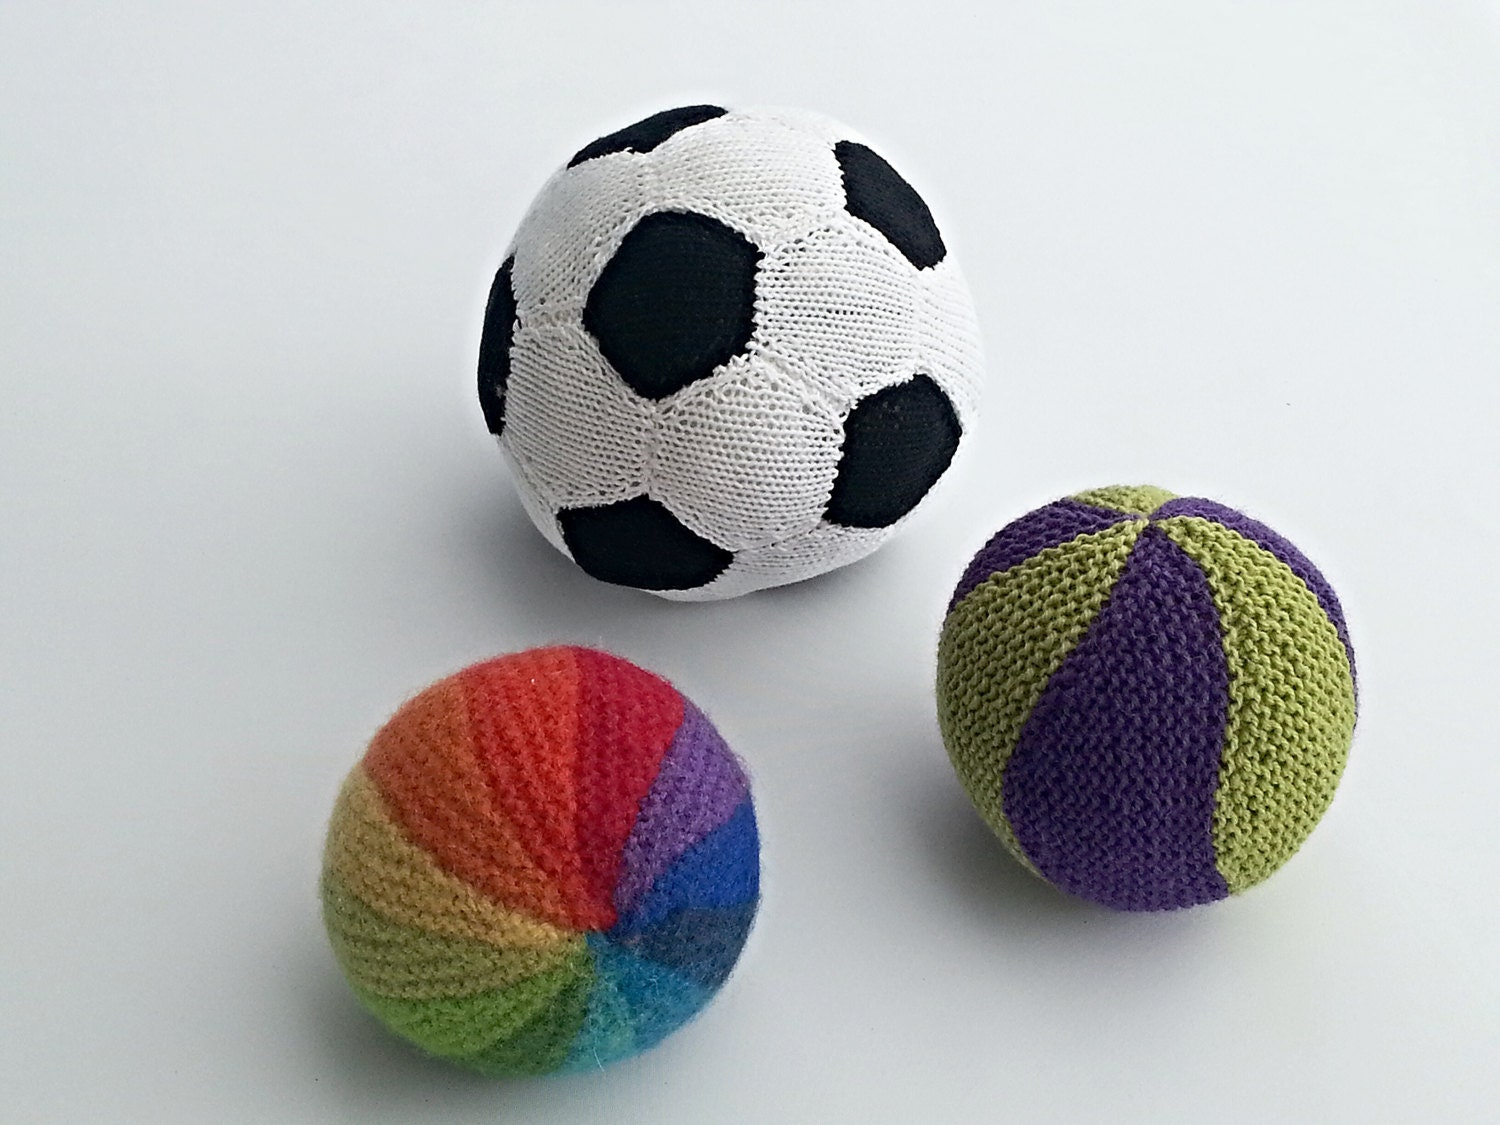 Soccer Ball Knitting Pattern : KNITTING PATTERN Knitted Balls Rainbow Ball Soccer Ball